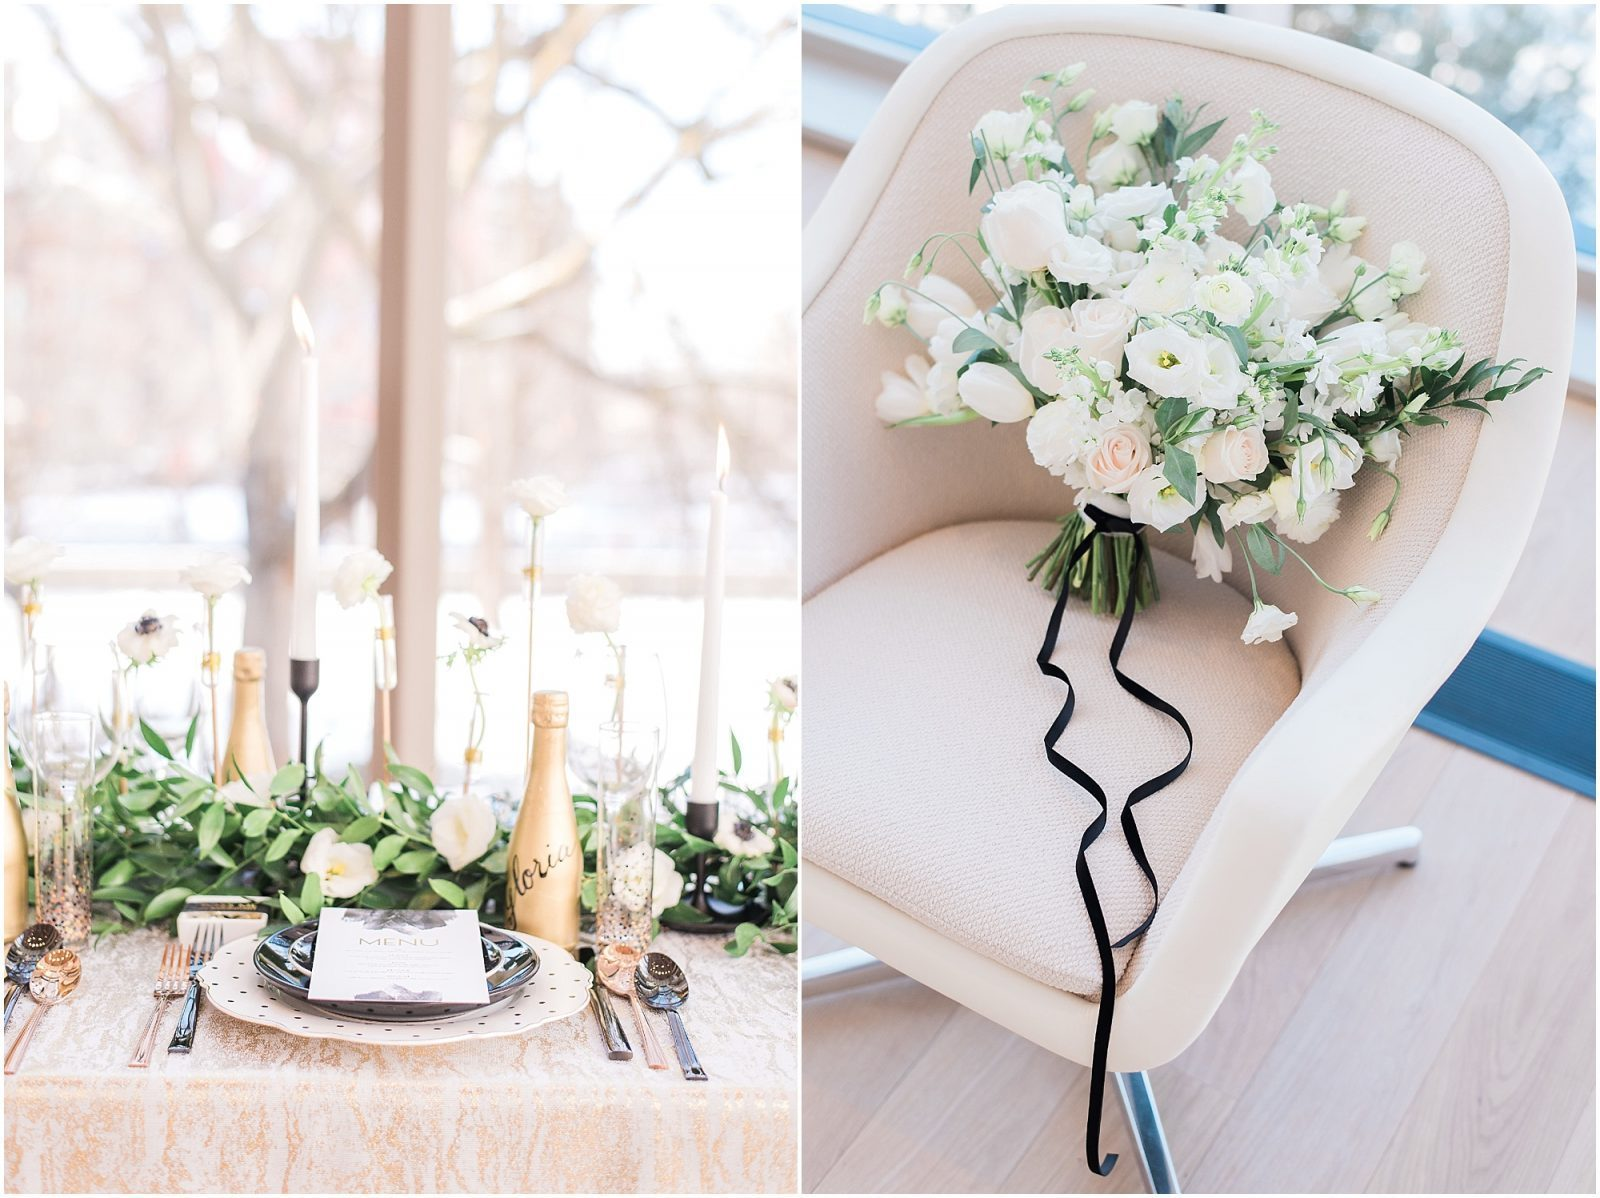 Wedding O'Born Room NAC Ottawa - New Years Glam Wedding Inspiration - lush white and green bouquet